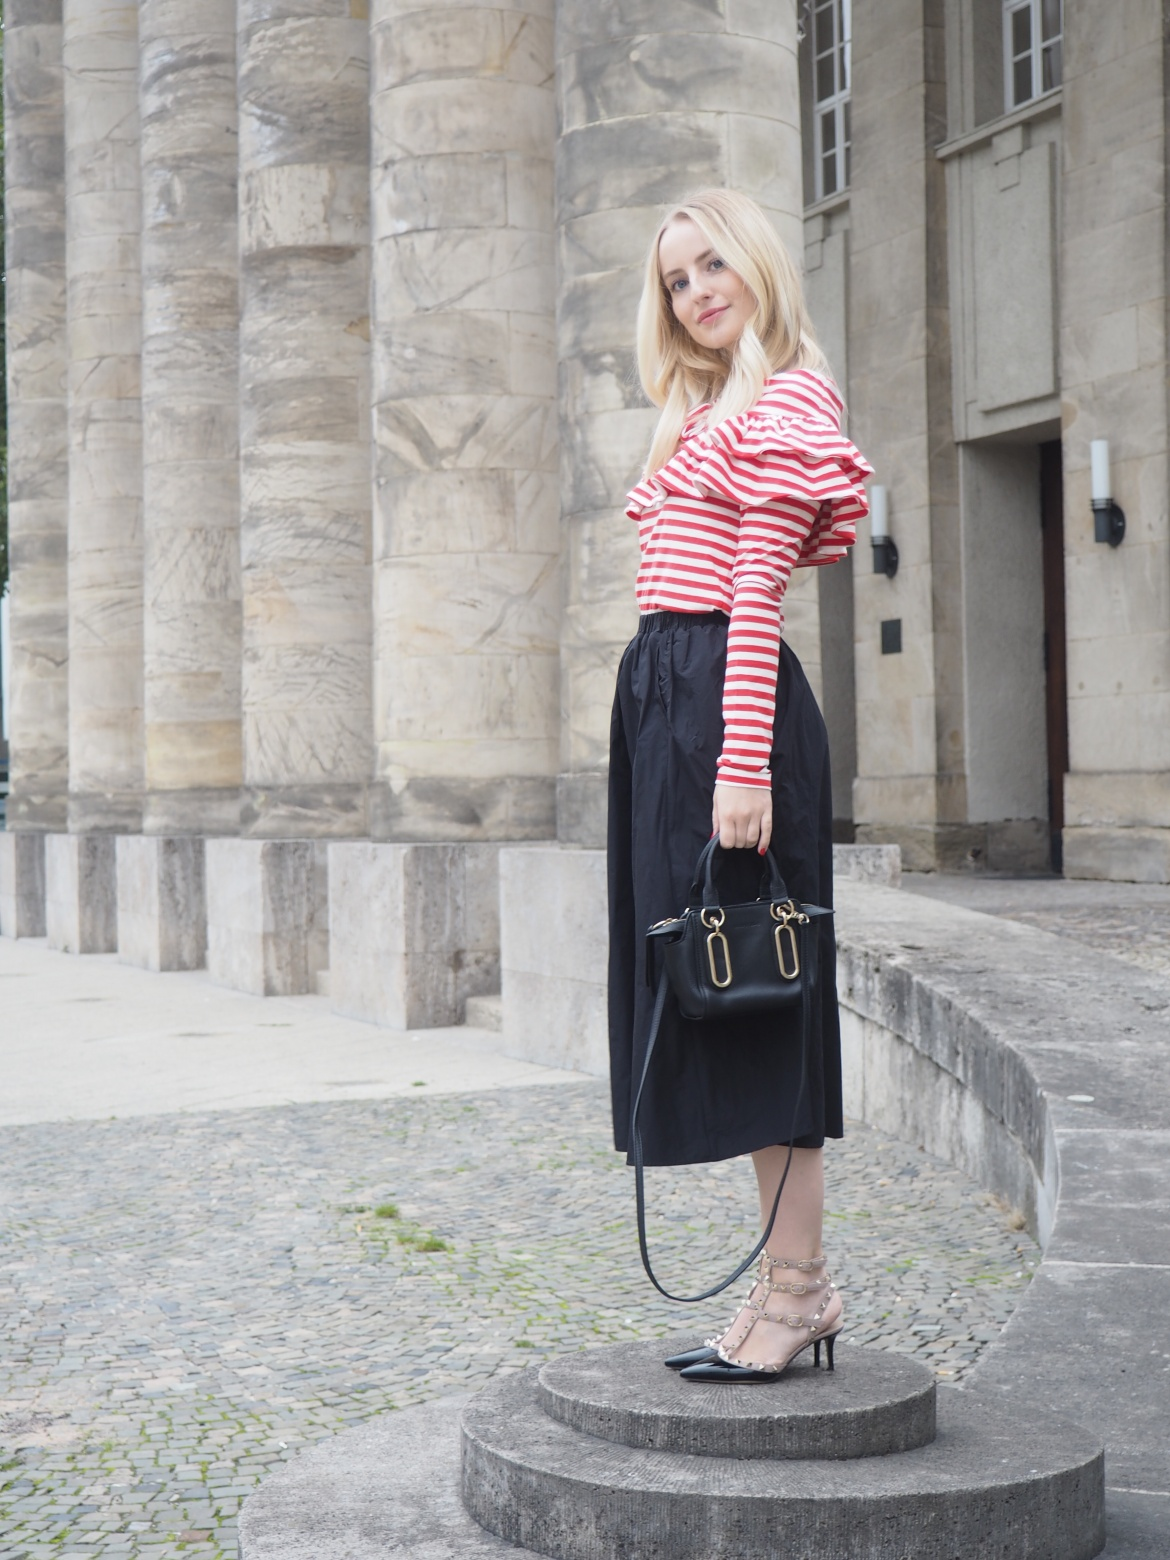 How to be Parisian - KIM ENGEL